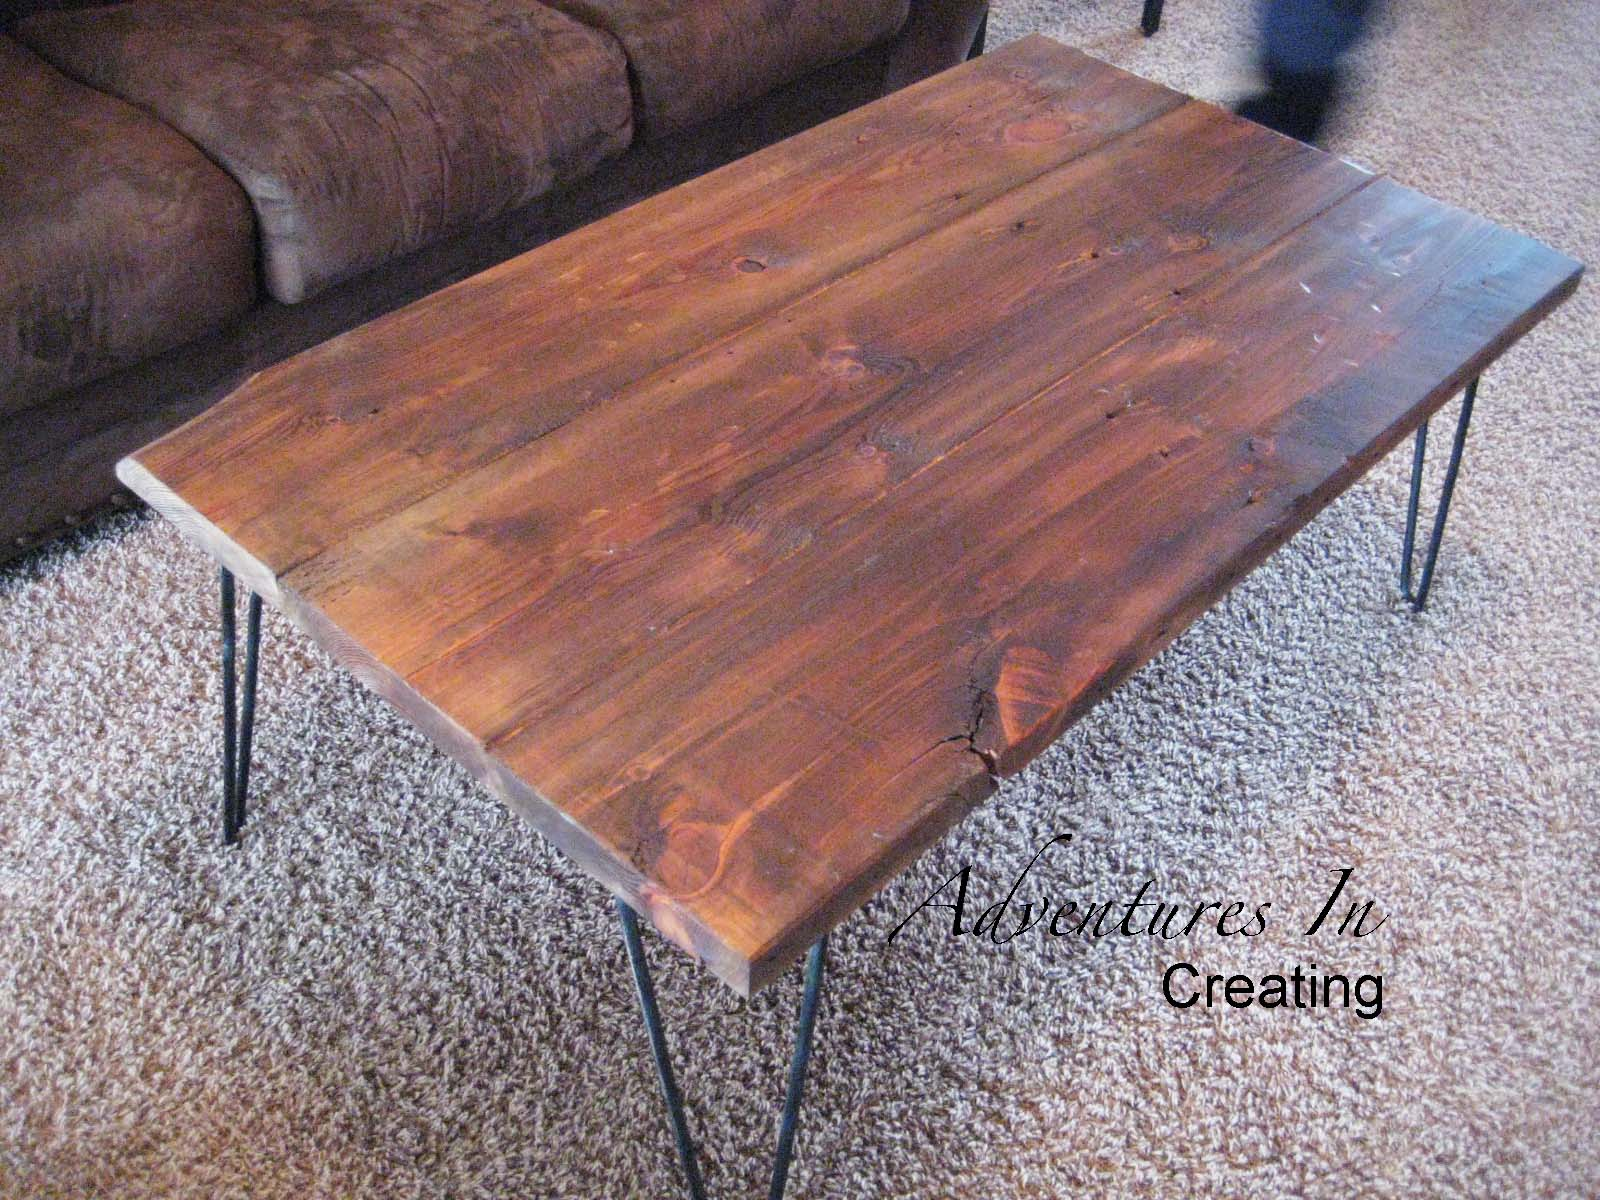 Diy Desk With Hairpin Legs Remodelaholic Reclaimed Wood Coffee Table With Hairpin Legs